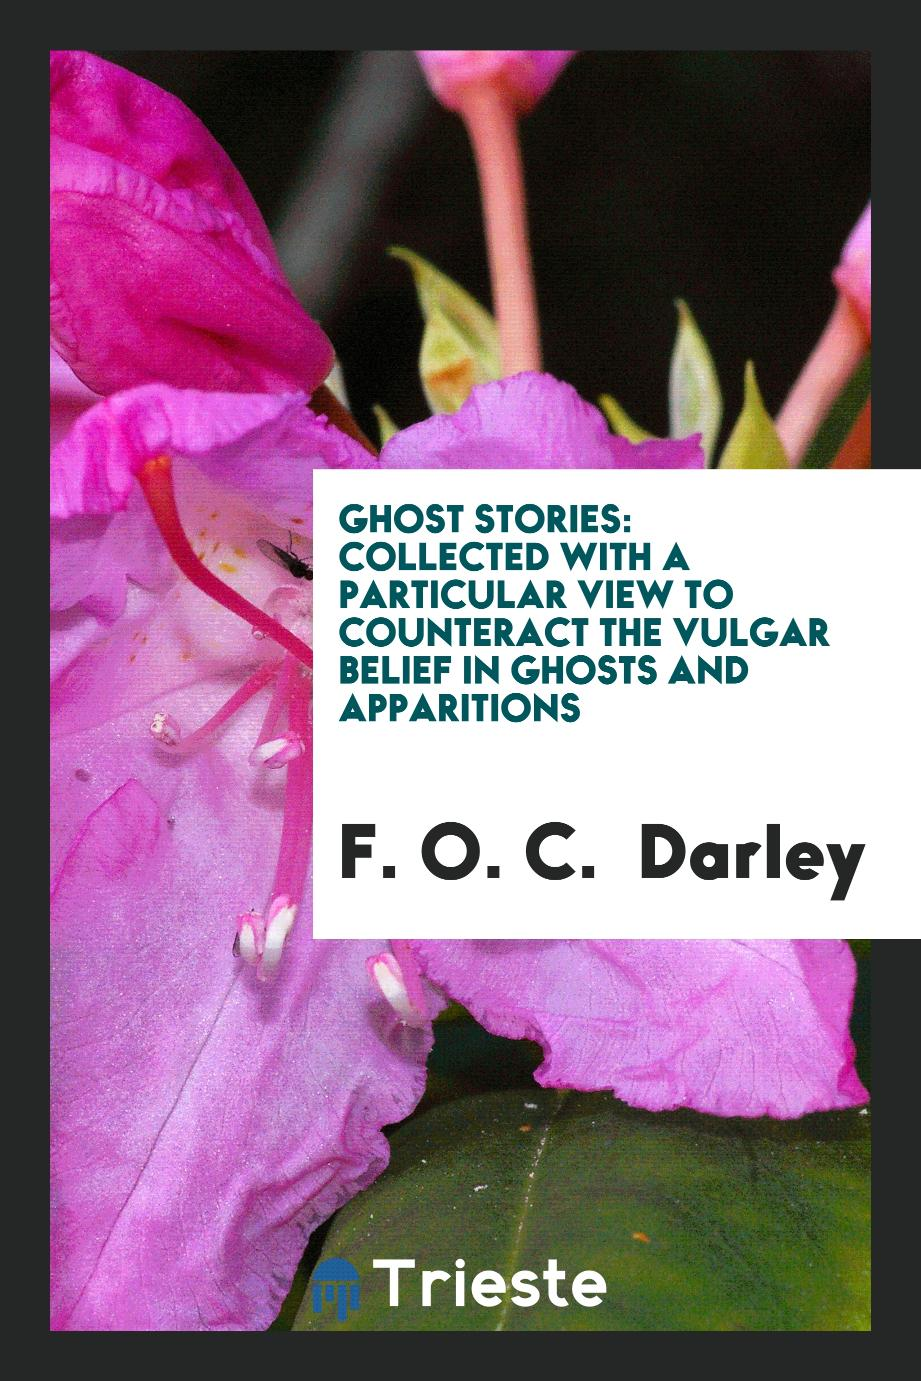 Ghost Stories: Collected with a Particular View to Counteract the Vulgar Belief in Ghosts and Apparitions